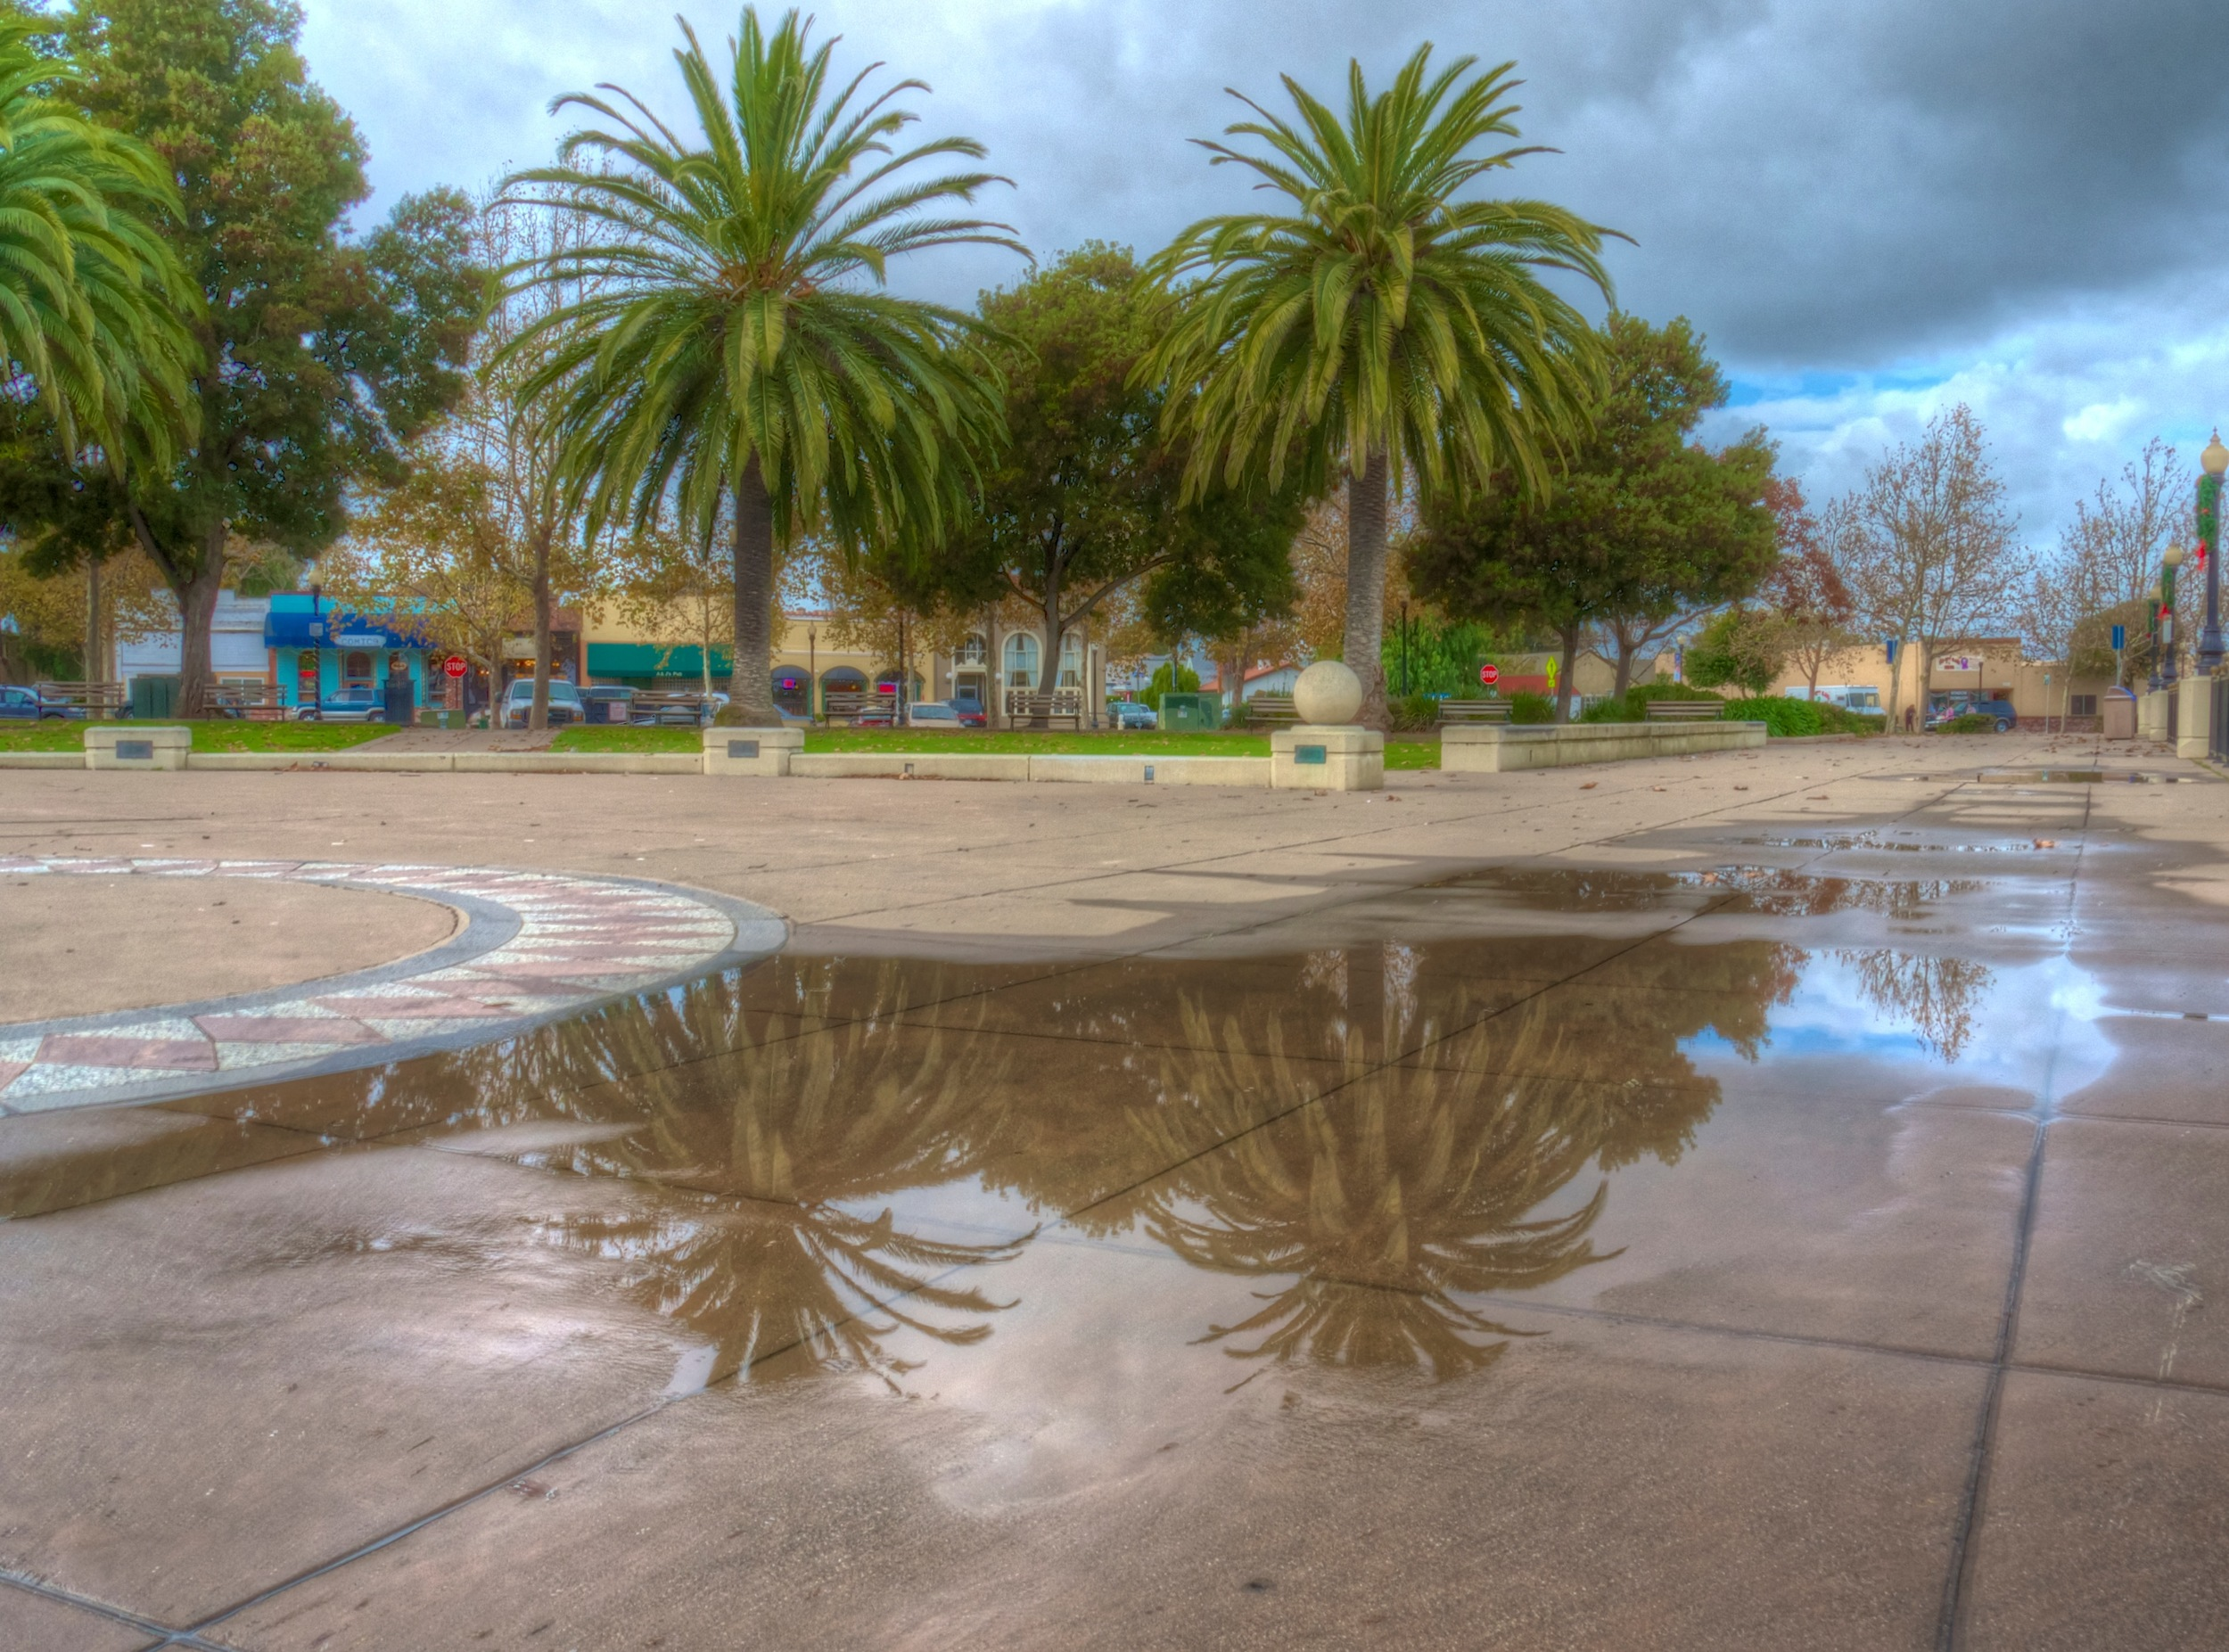 HDR photo of some lovely palm trees reflected by a puddle.